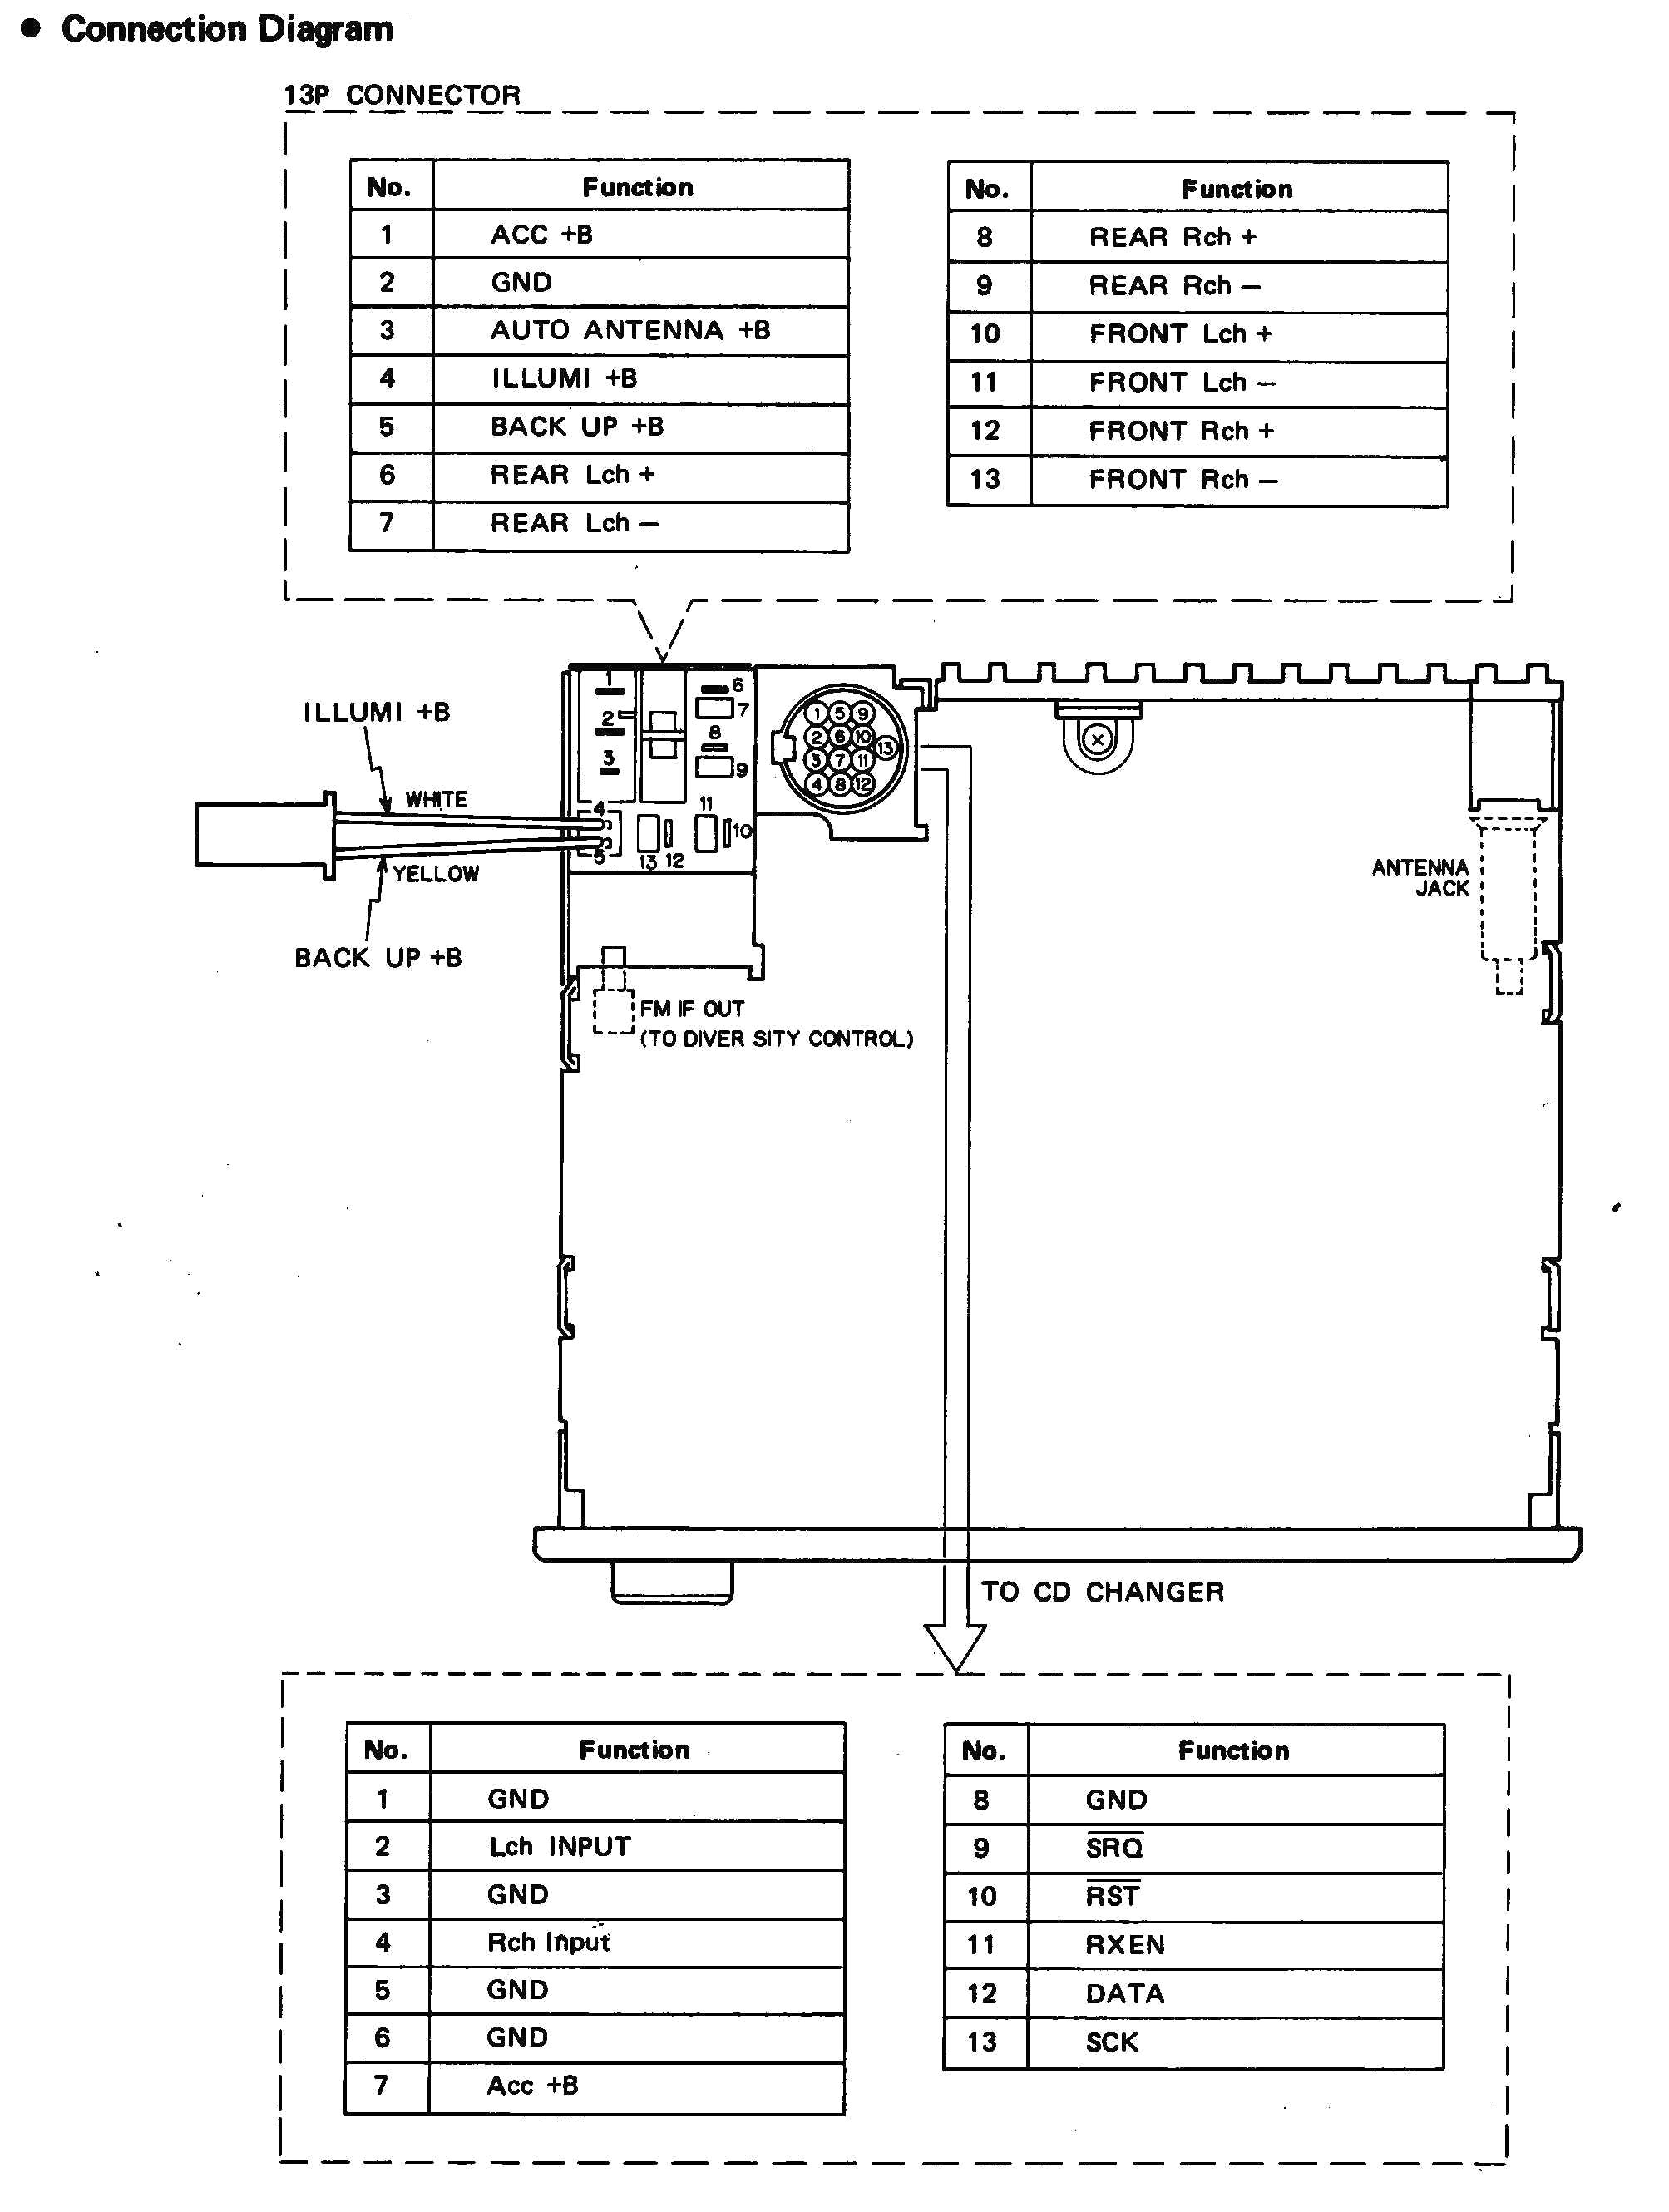 Sony car stereo wiring diagram my wiring diagram factory car stereo wiring diagrams asfbconference2016 Images